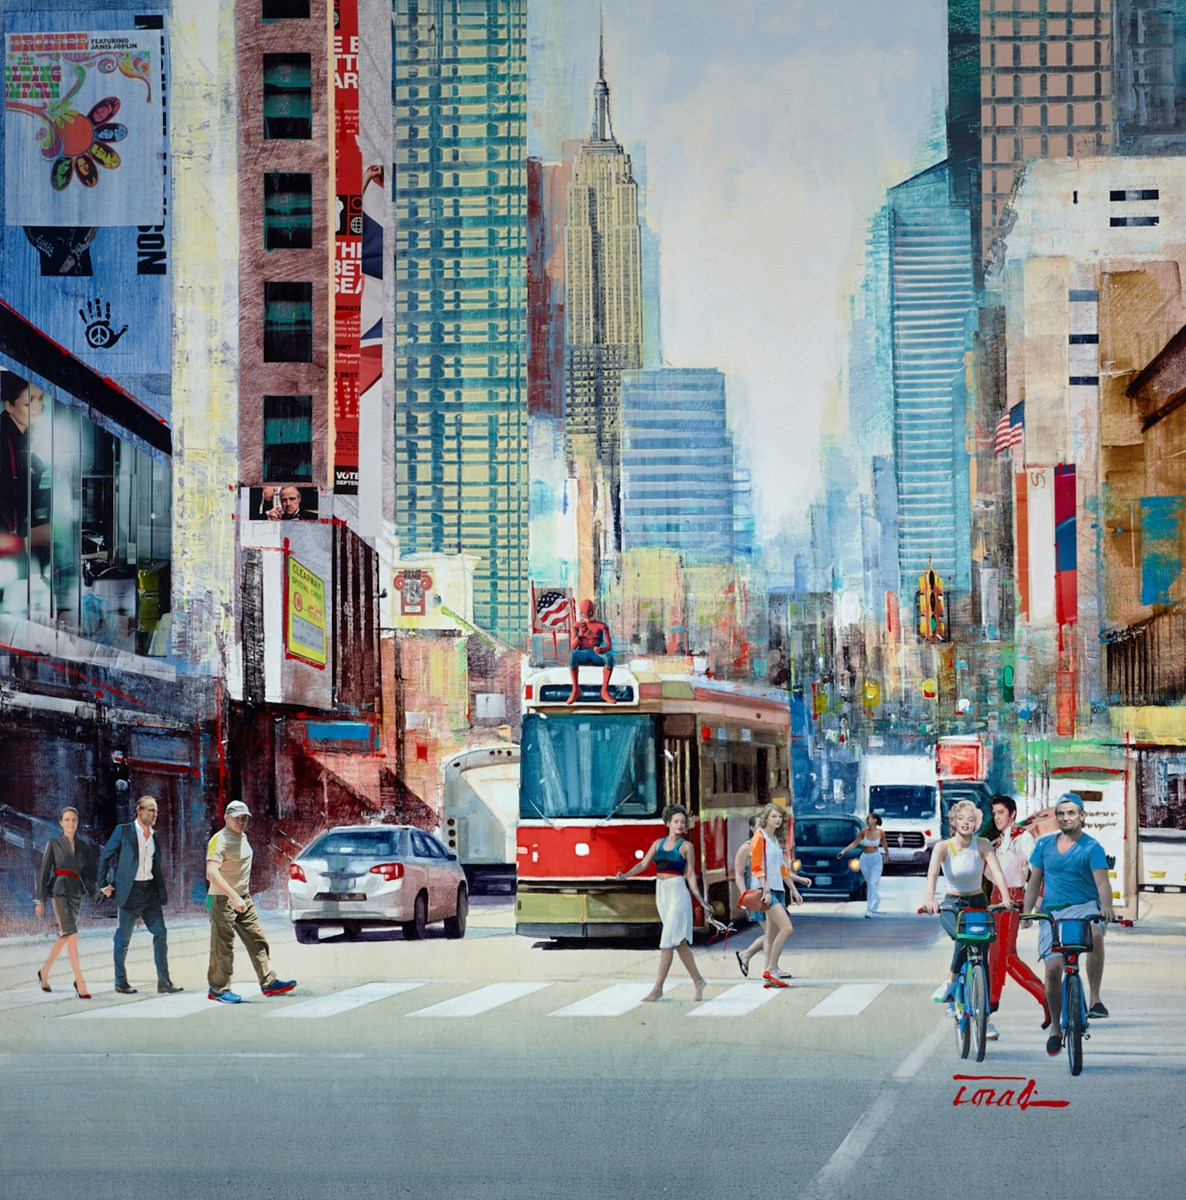 City Life VI by Torabi -  sized 36x36 inches. Available from Whitewall Galleries